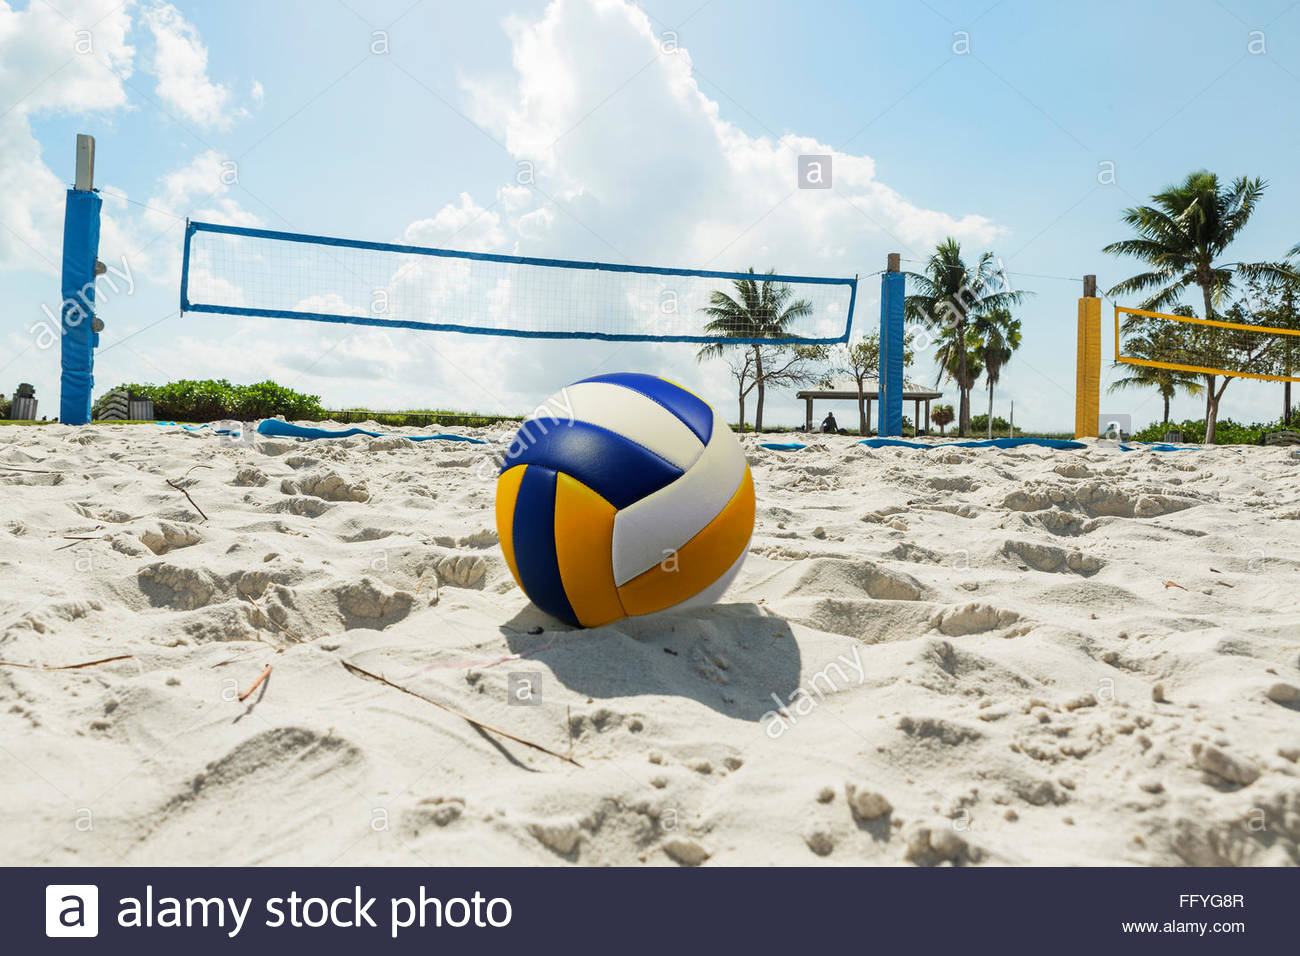 Volley ball in the foreground on the sand beach in the background 1300x956